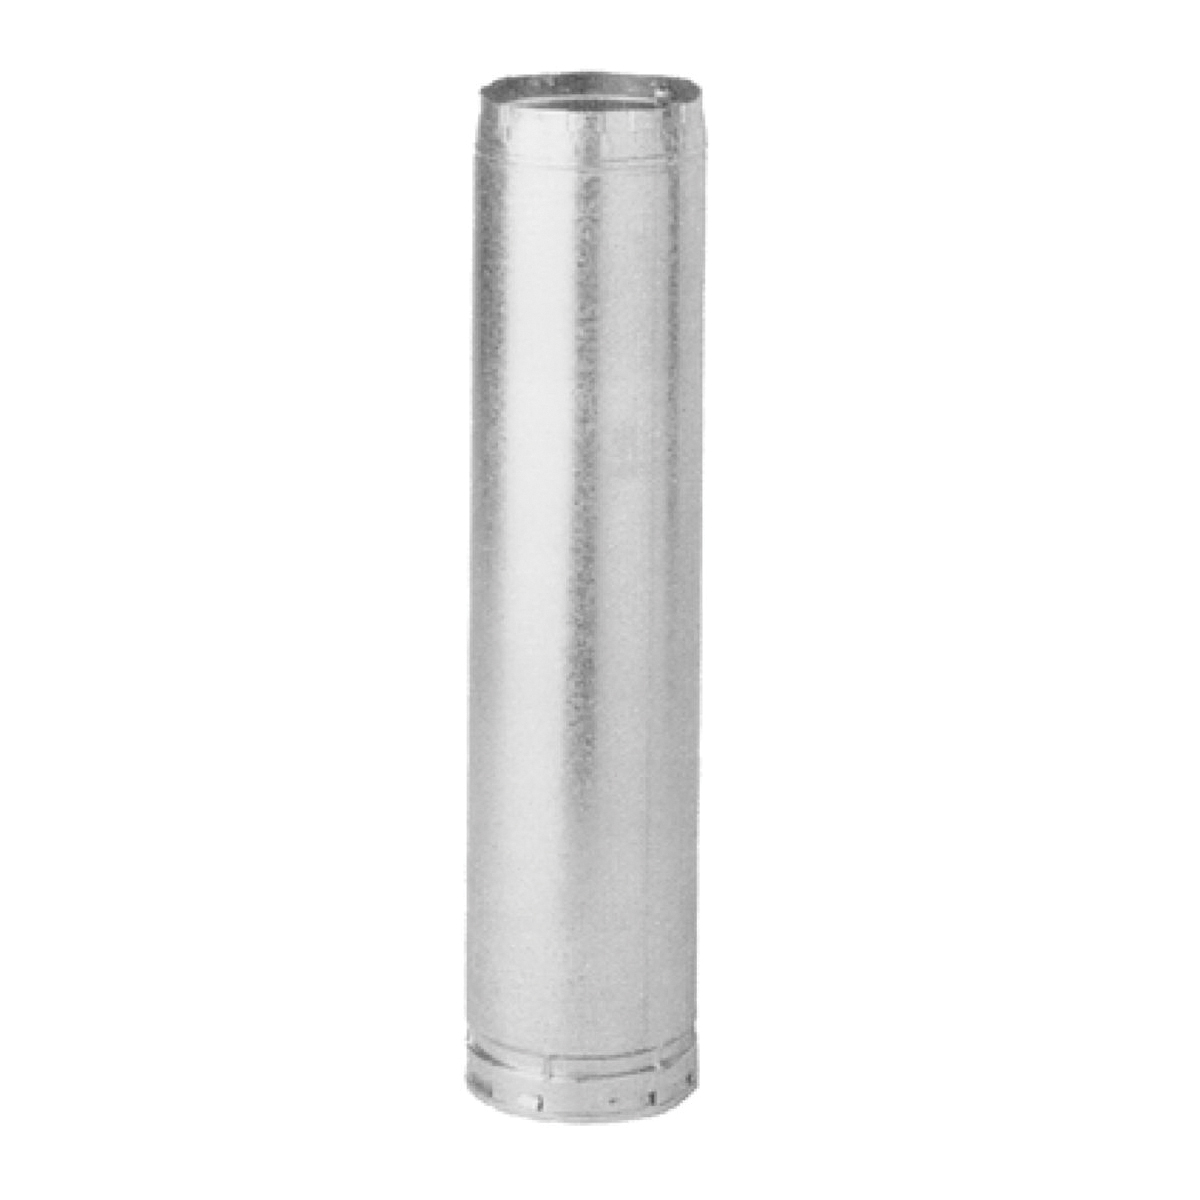 AmeriVent® 7R4 Type B Gas Vent Pipe Section, Steel/Aluminum, 7 in ID x 8 in OD, 4 in L, Galvanized, Import